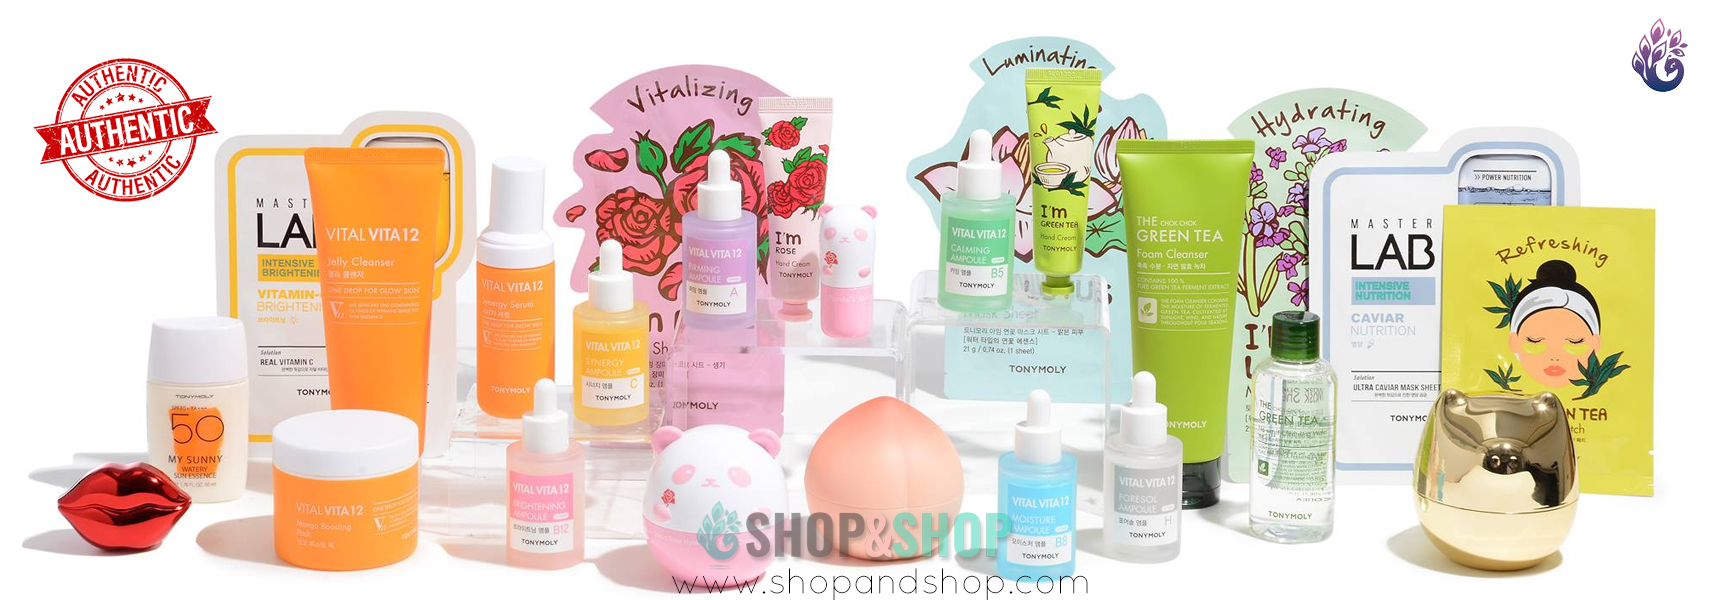 Tonymoly brand products in India from Shop&Shop